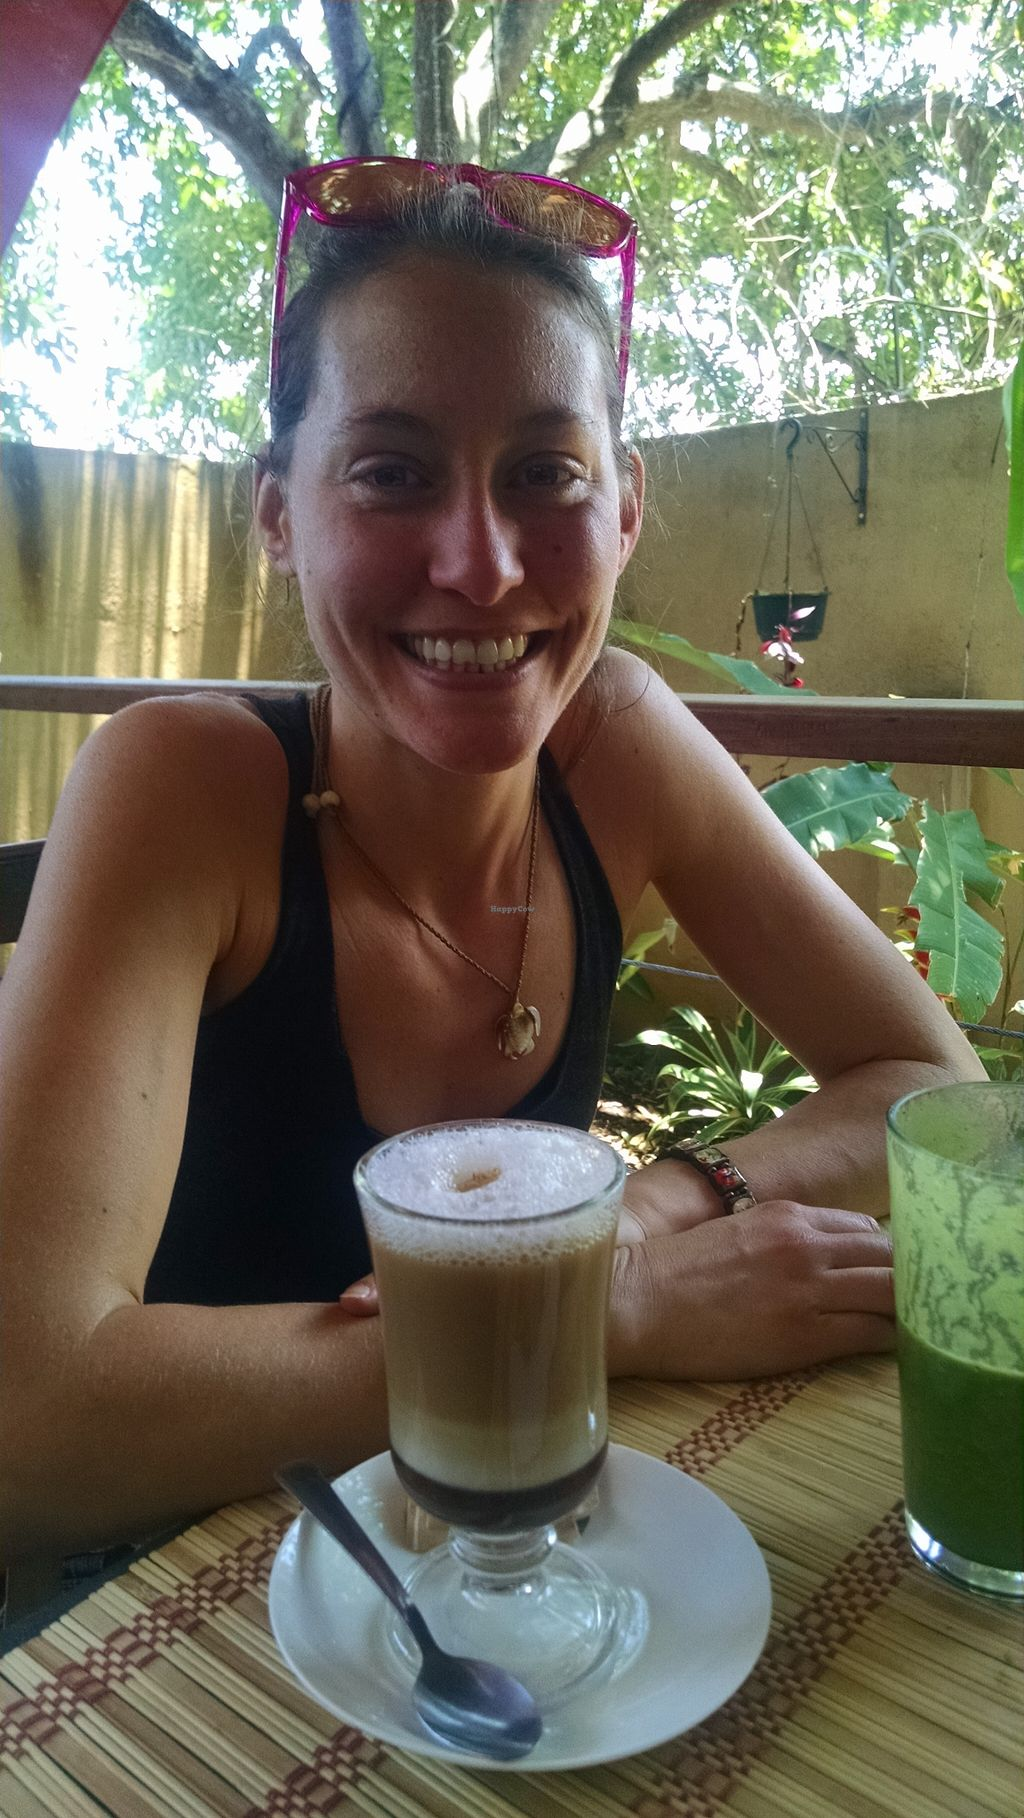 """Photo of Mantras Veggie Cafe and Tea House  by <a href=""""/members/profile/ErinBveggie"""">ErinBveggie</a> <br/>My happy self with my coffee and smoothie <br/> April 21, 2016  - <a href='/contact/abuse/image/18650/145564'>Report</a>"""